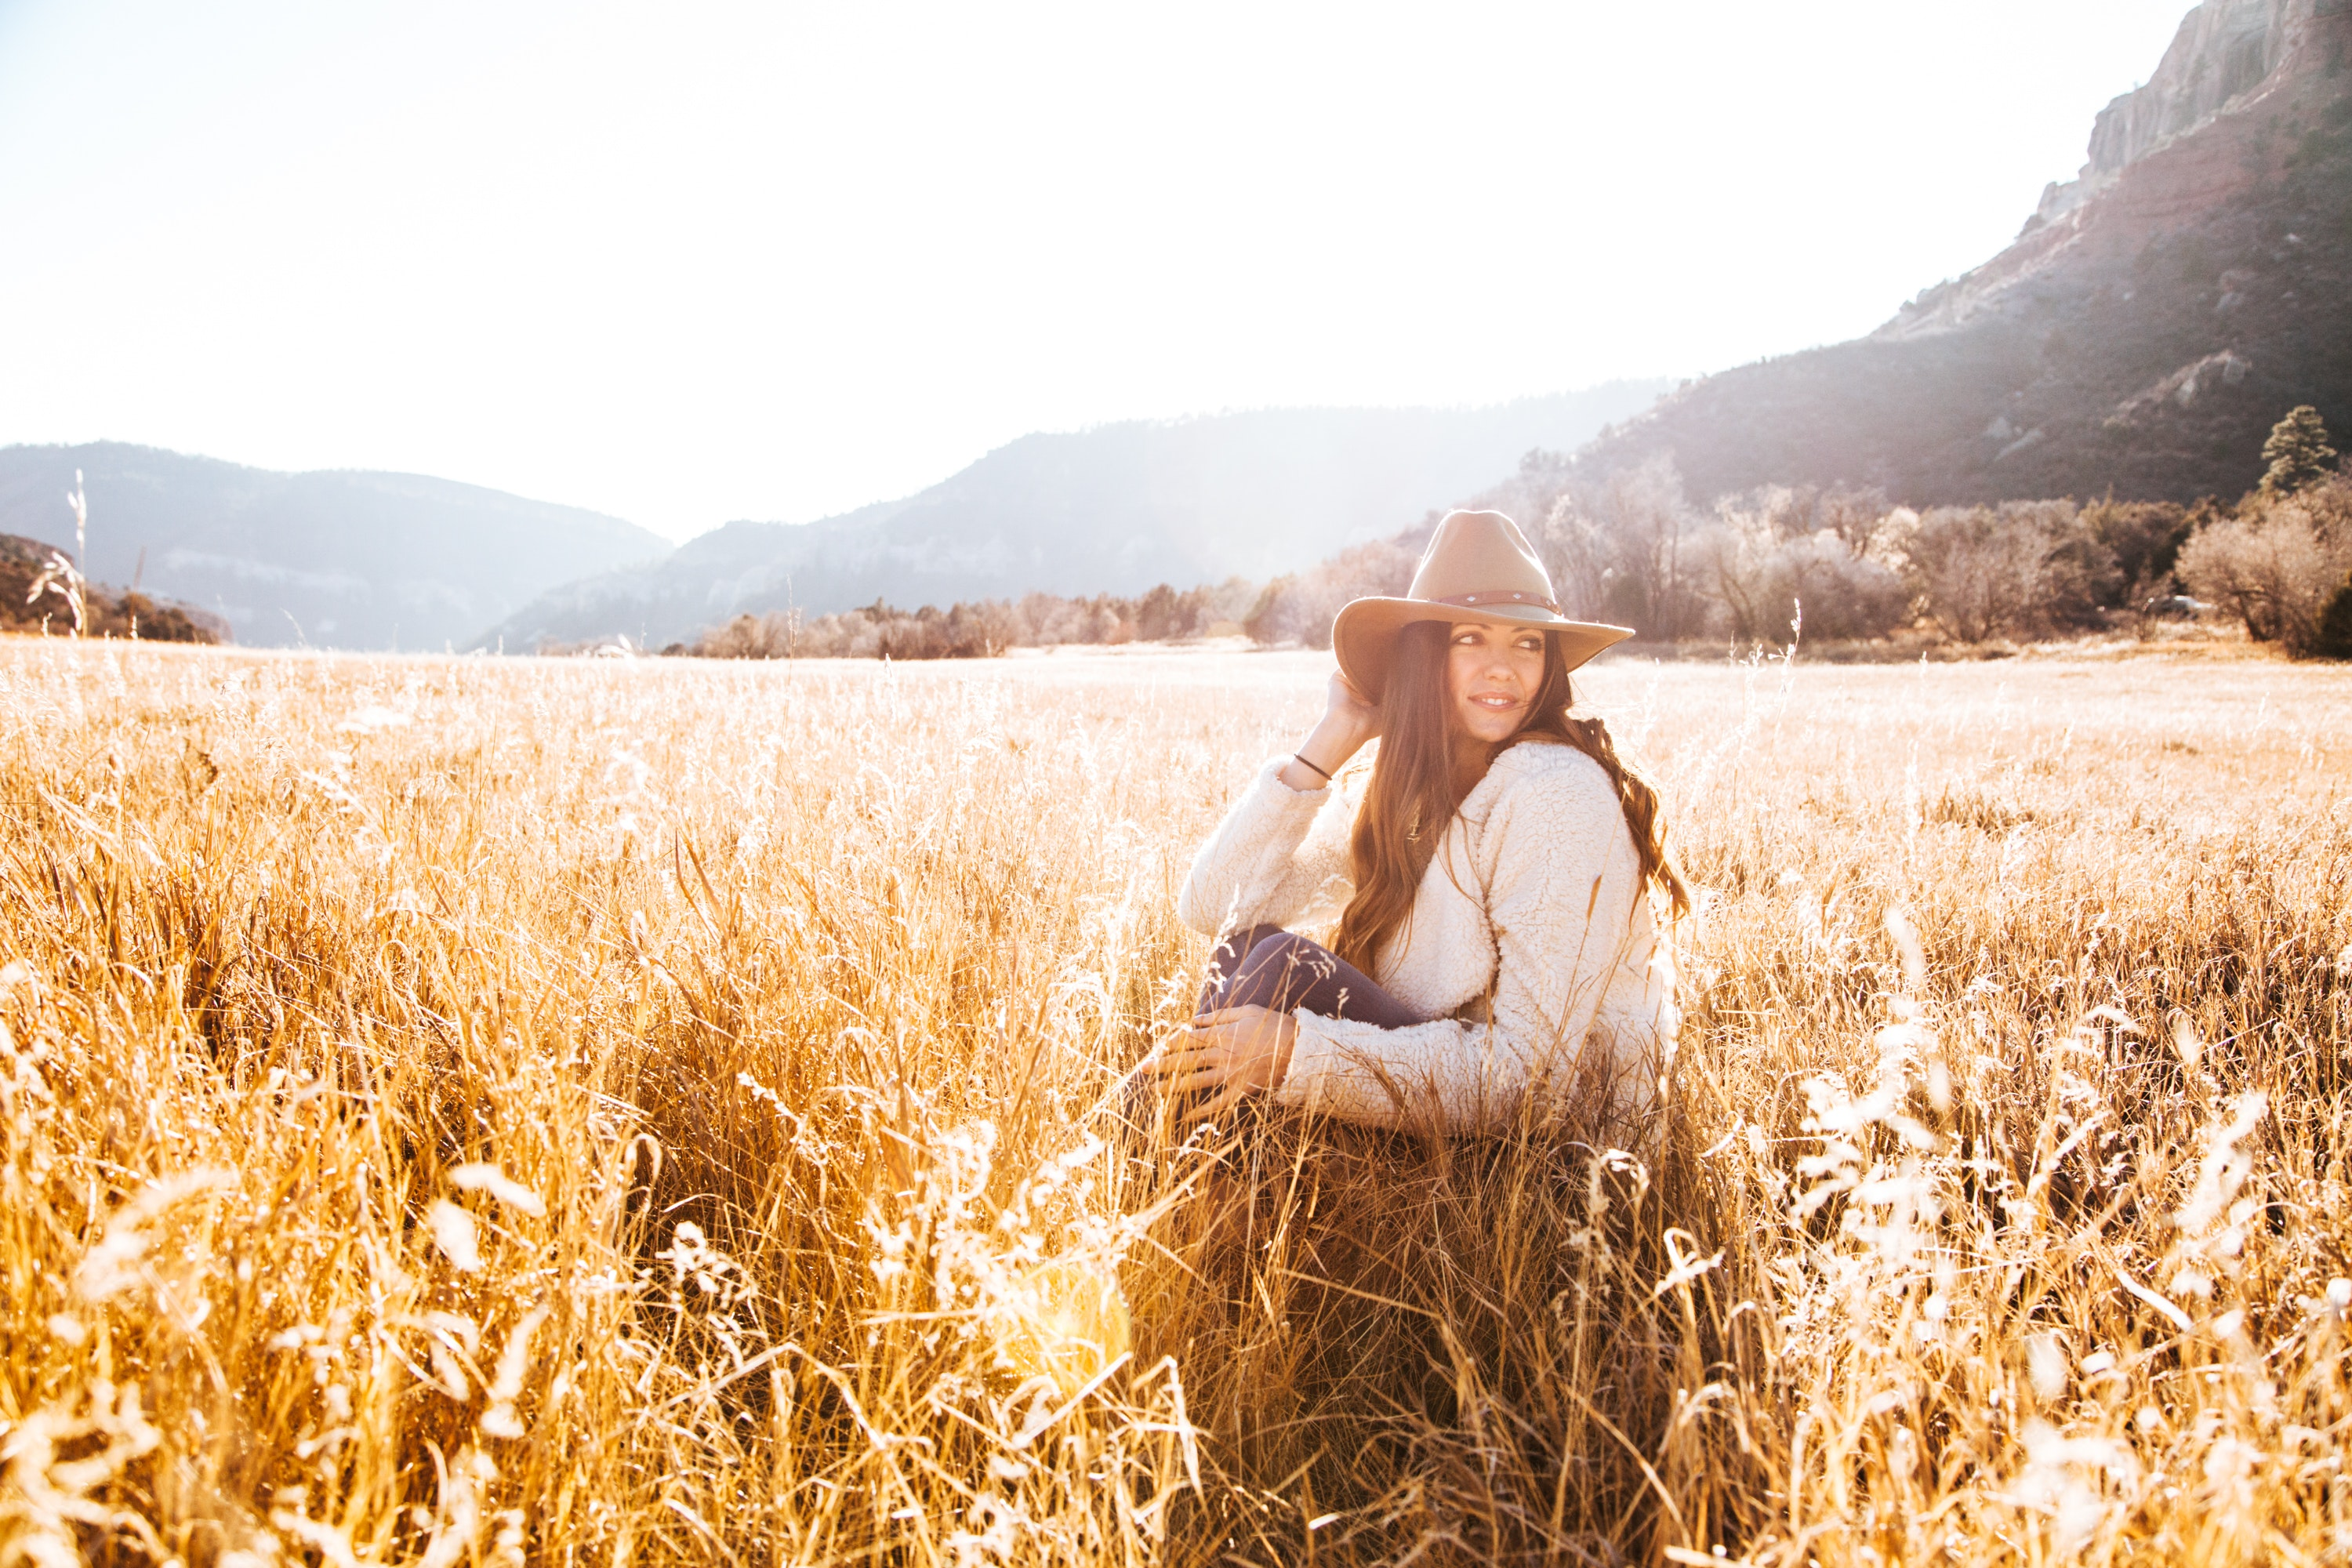 Woman Sitting on Grass Wearing Sun hat Field, Agriculture, Model, Wheat field, Wheat, HQ Photo